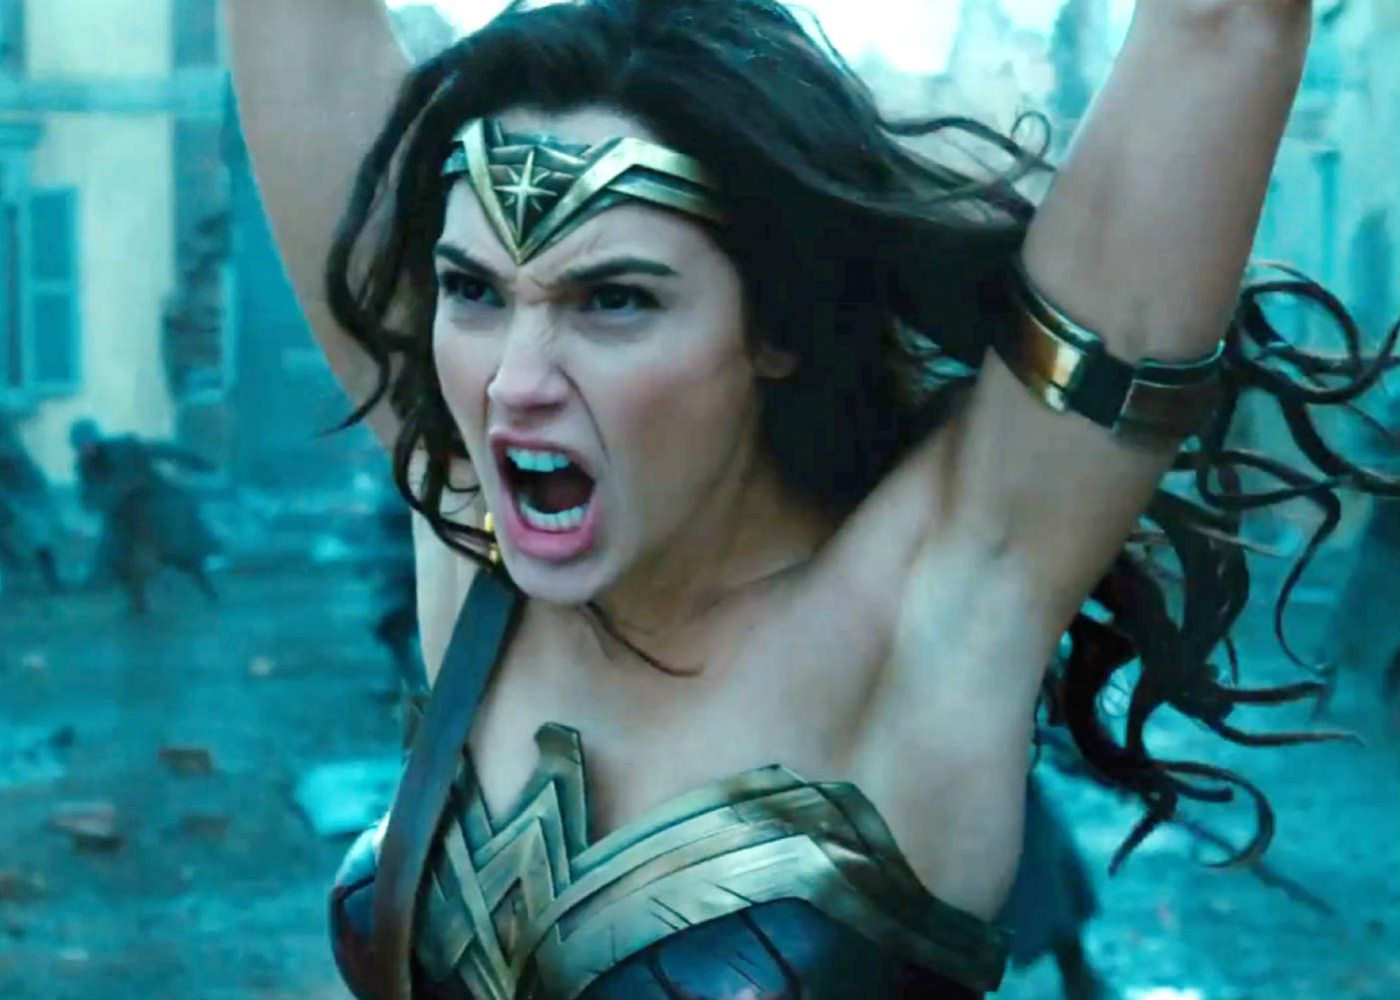 Early Viewings of Wonder Woman Set Off a Storm of Positive Tweets